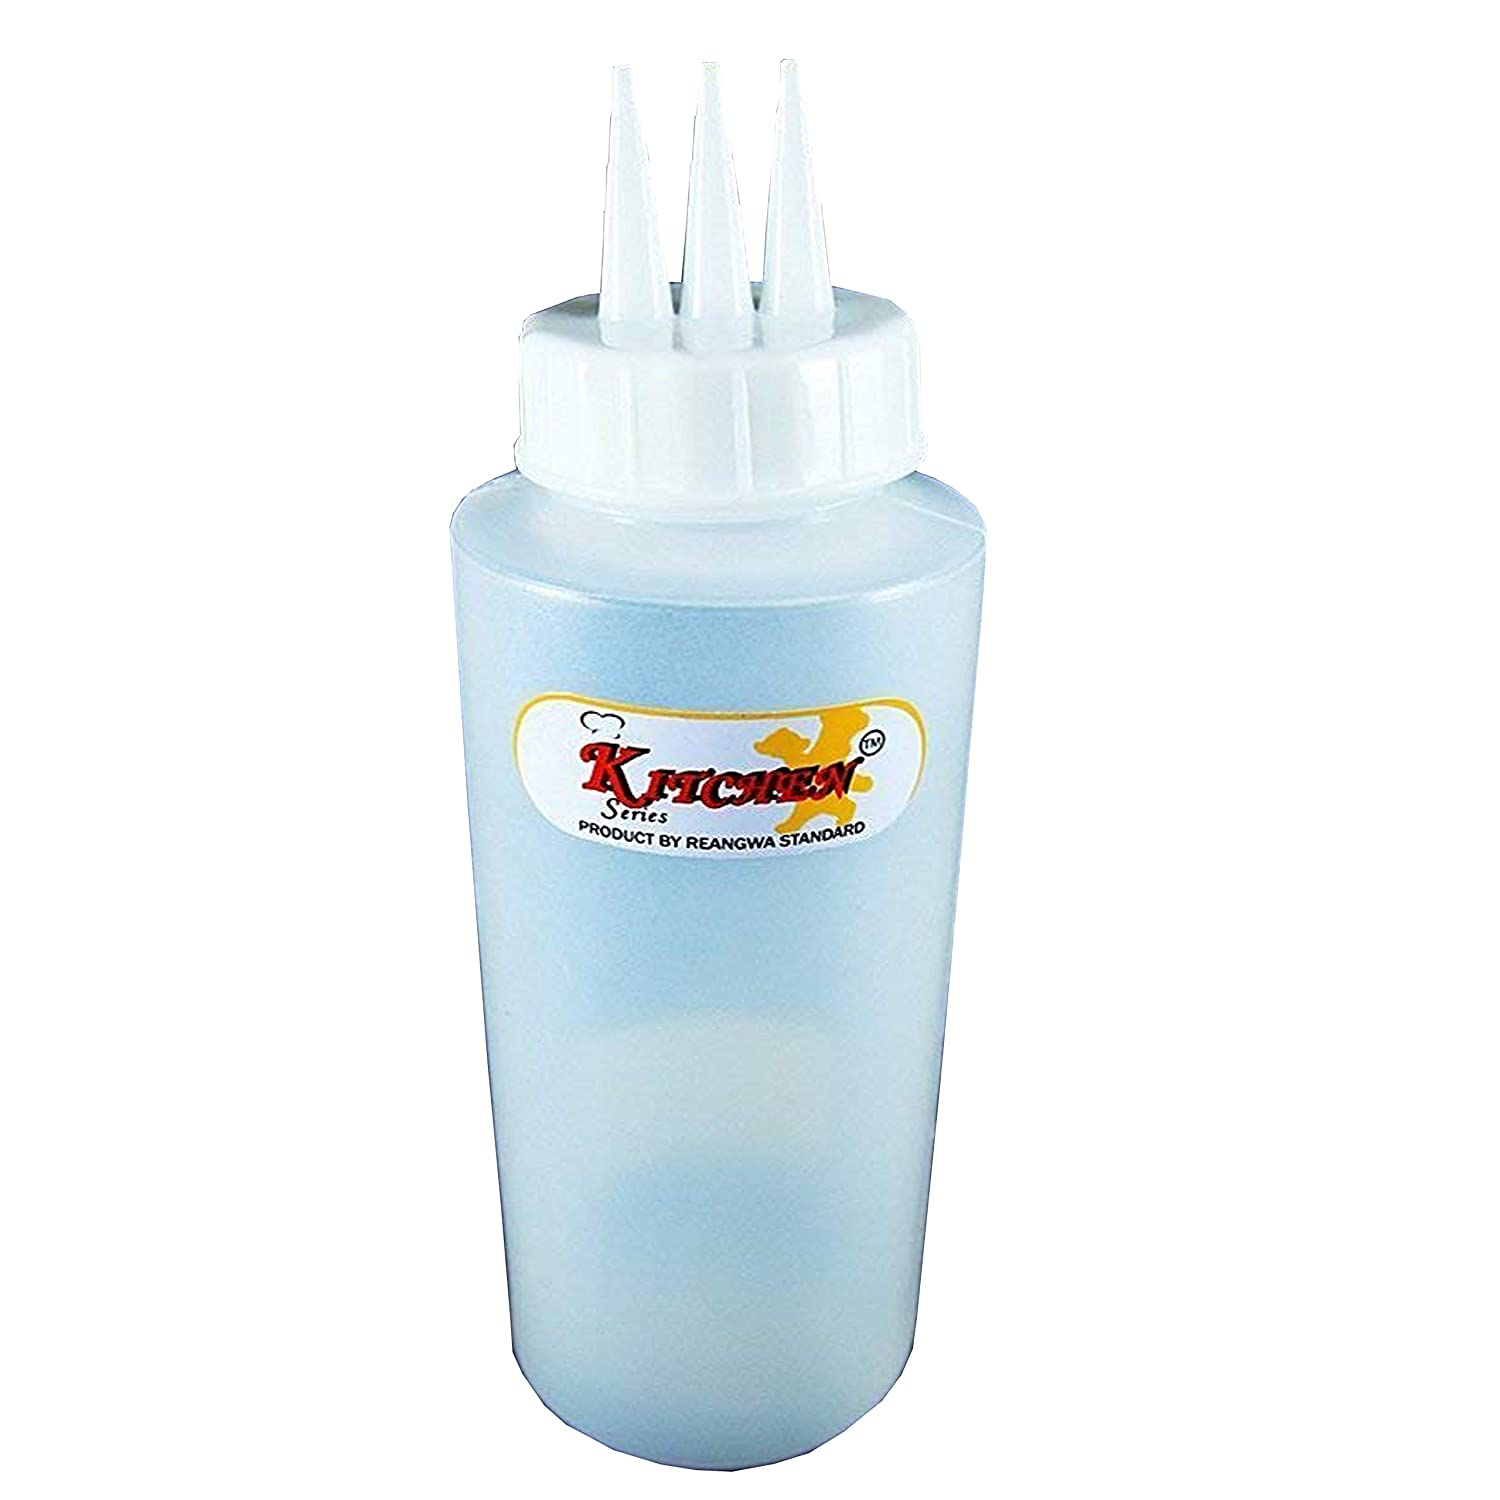 3 Head Pole Condiment Sauce Squeeze Bottle Dispenser ketchup, 12 oz KP Mart AX-AY-ABHI-23708